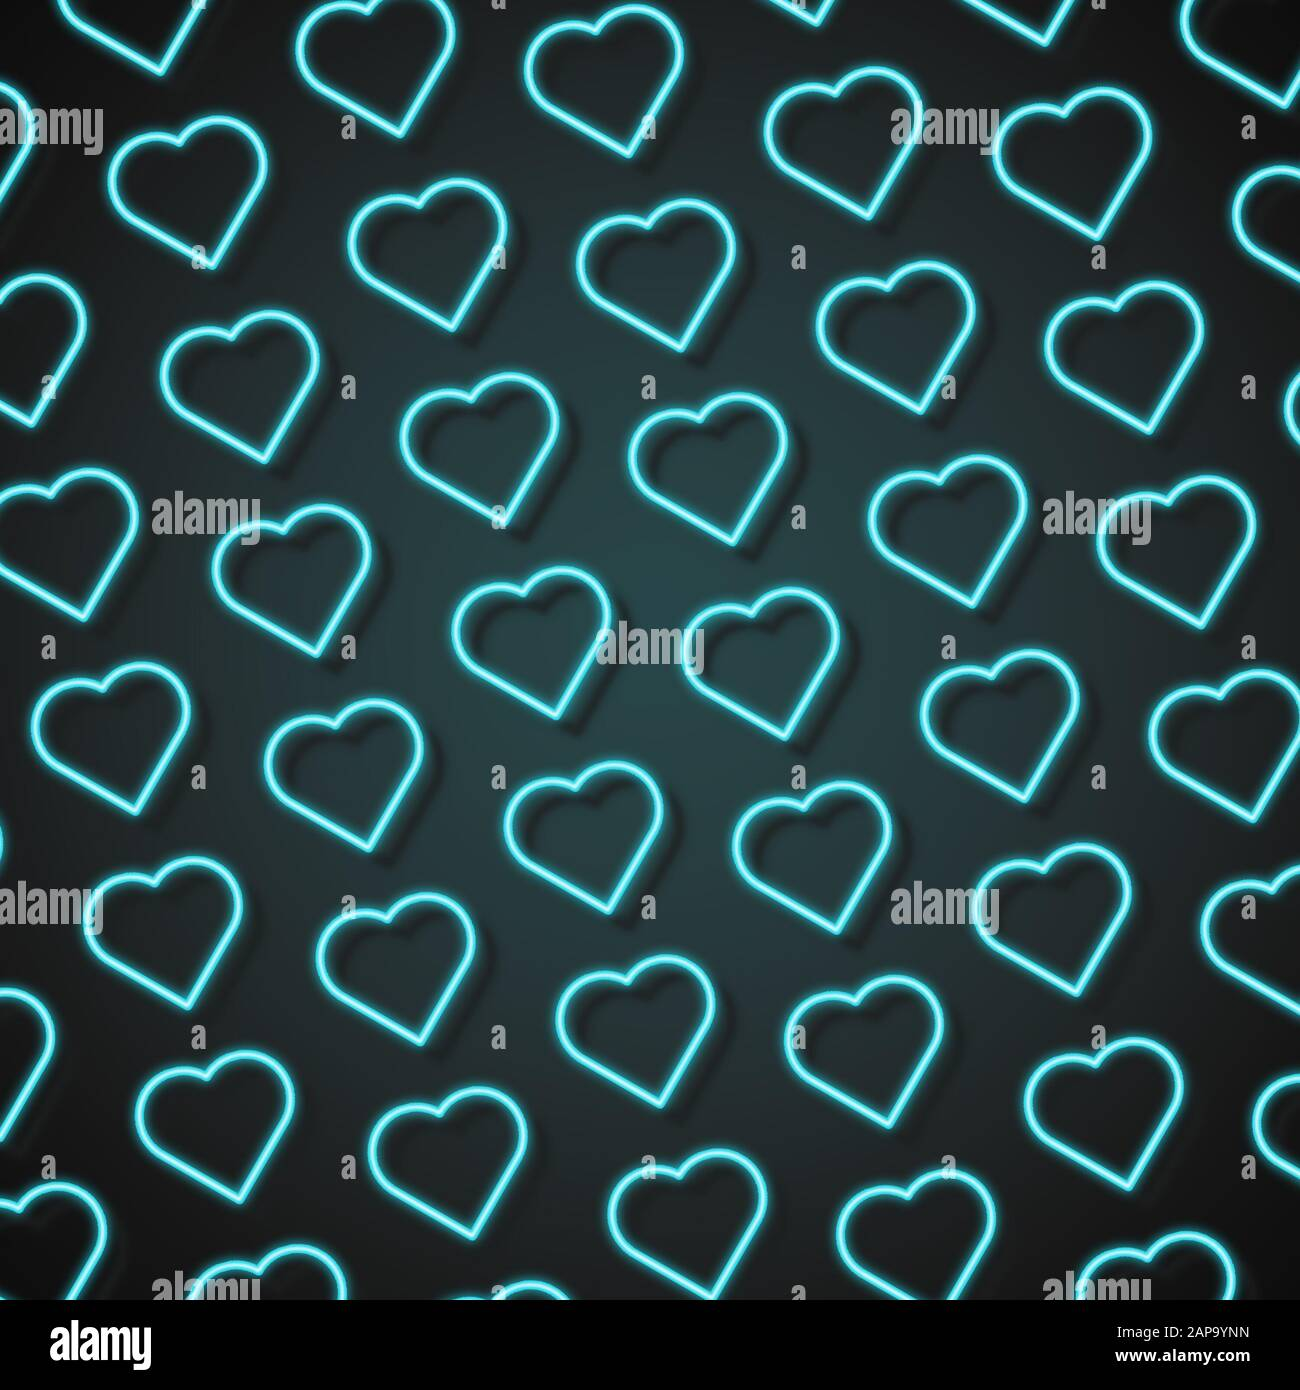 card for saint valentines day neon colored blue hearts on dark modern artwork bright wallpaper background pattern for your device design or advertisement romantic love concept 2AP9YNN